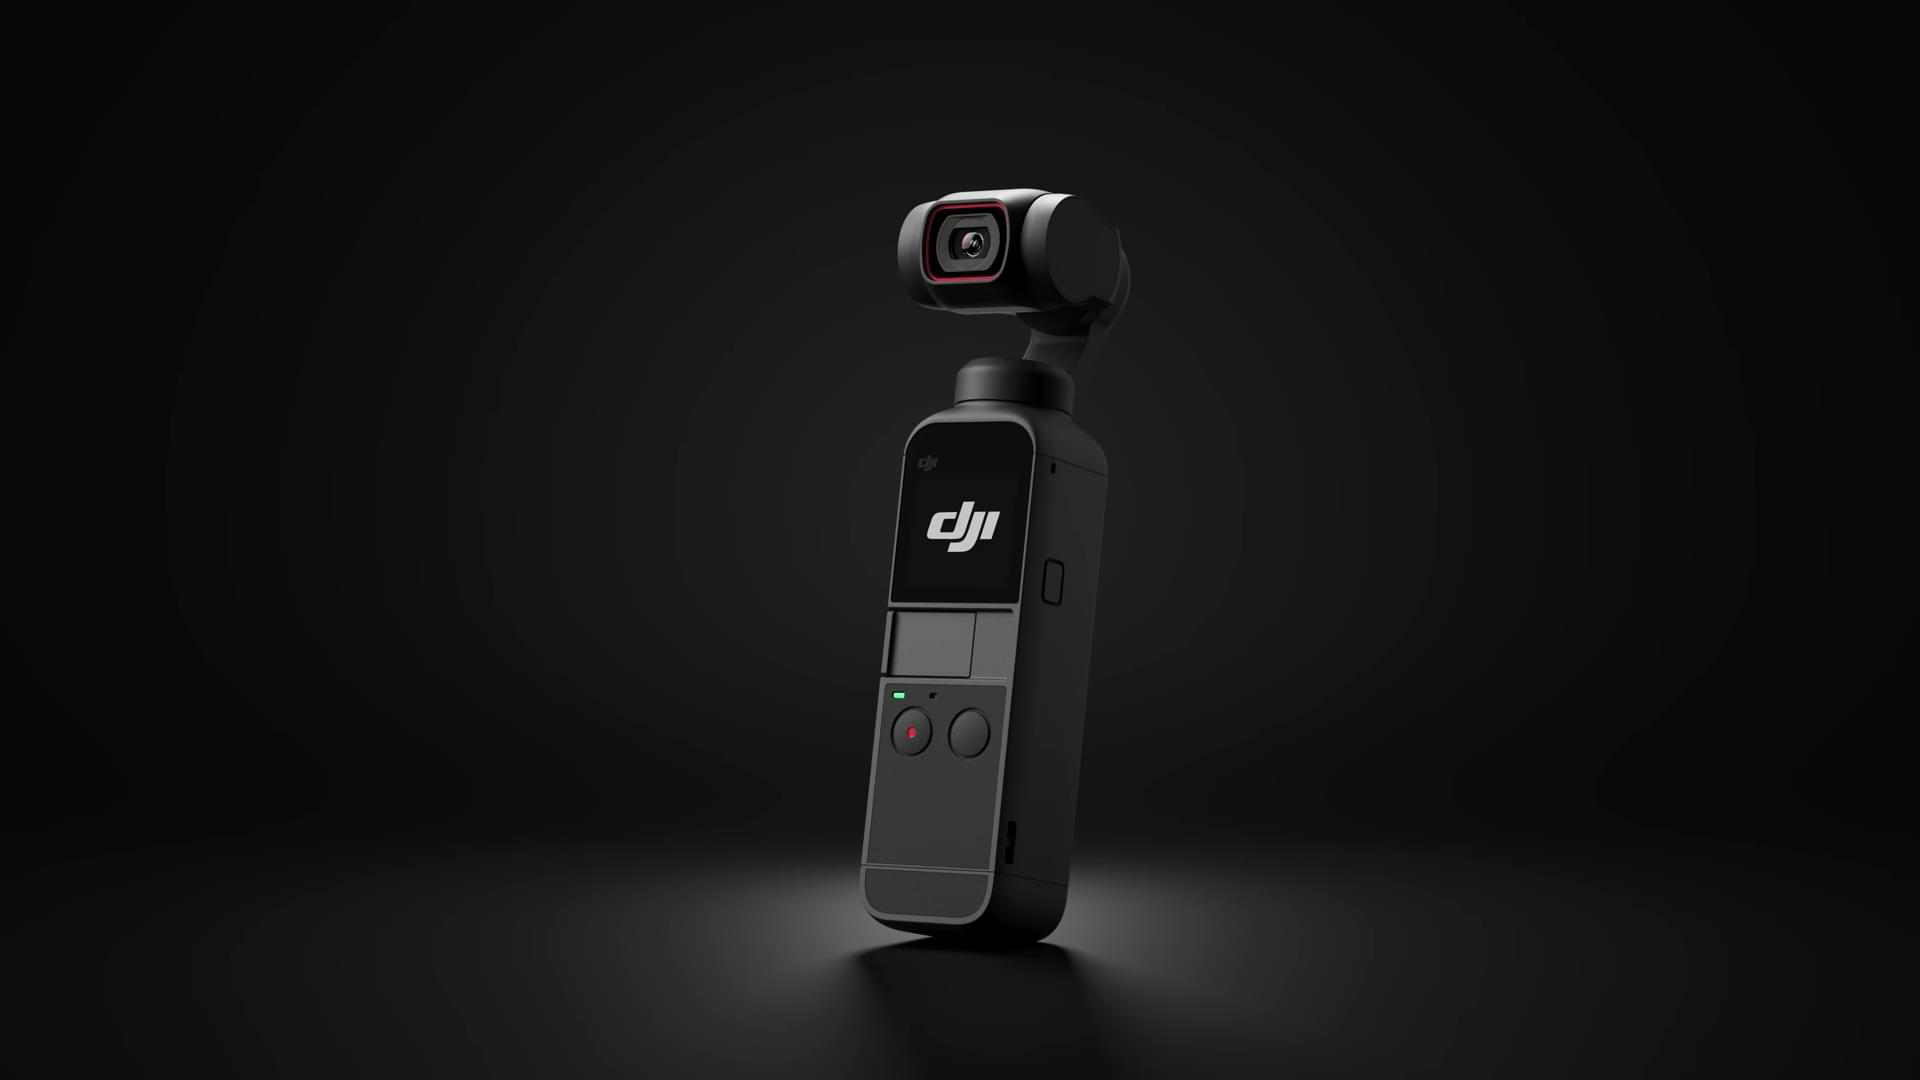 The new DJI Pocket 2 brings updated sensors, optics and audio